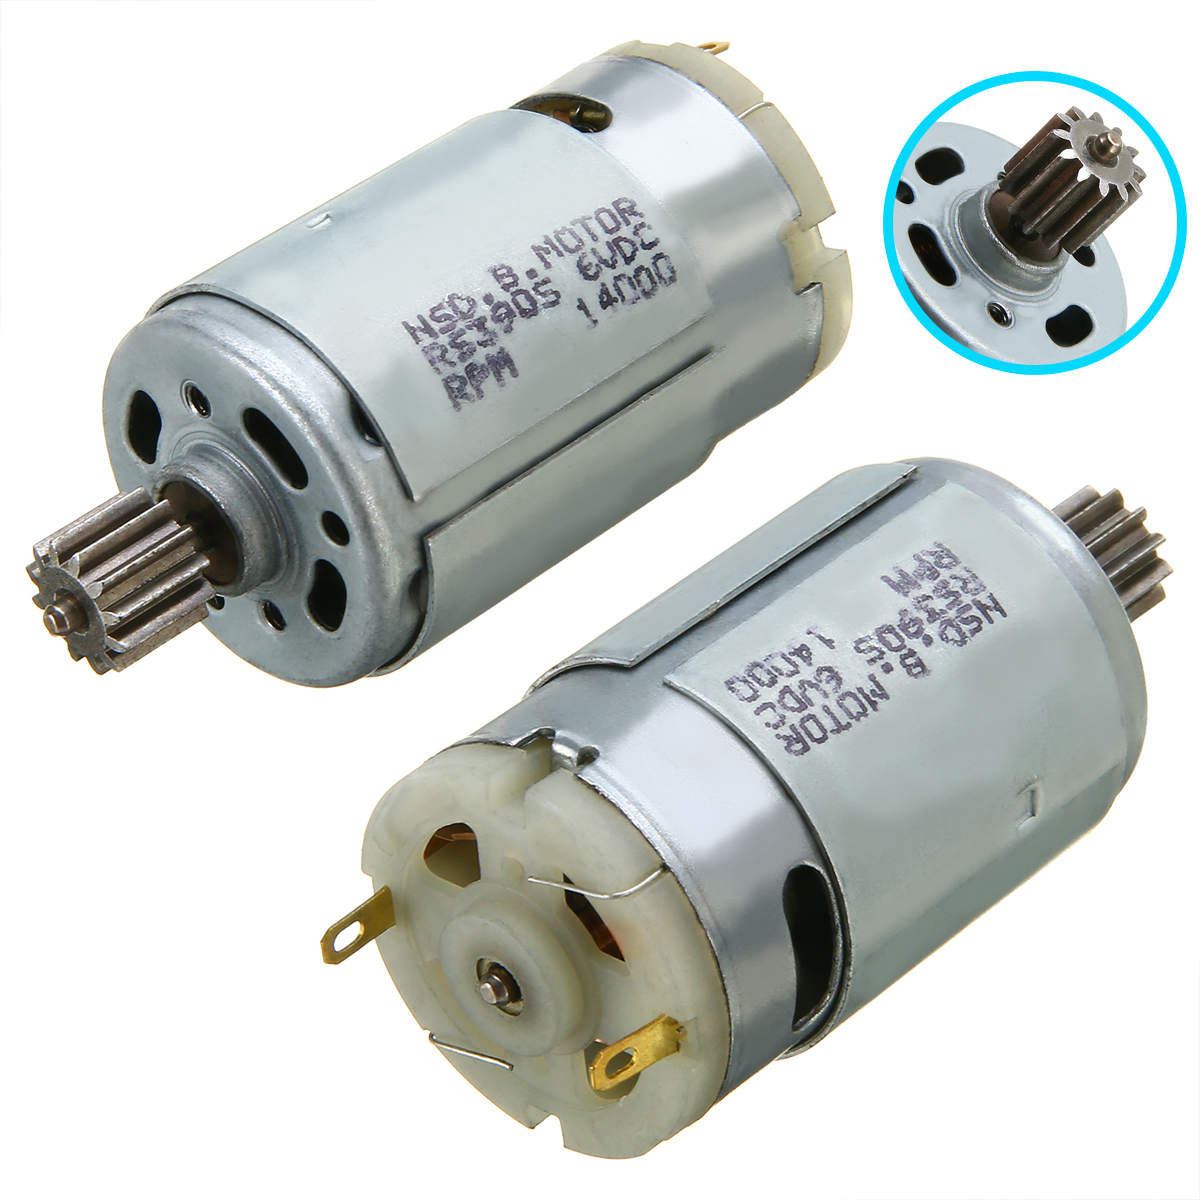 1pc RS390 Kid Car Motor 6V 14000RPM Electric Motor 25-35W For Kid Ride On Car Bike Toy Gear Box Motor 70x28mm запчасти для детского транспорта motor 6v 12v rs390